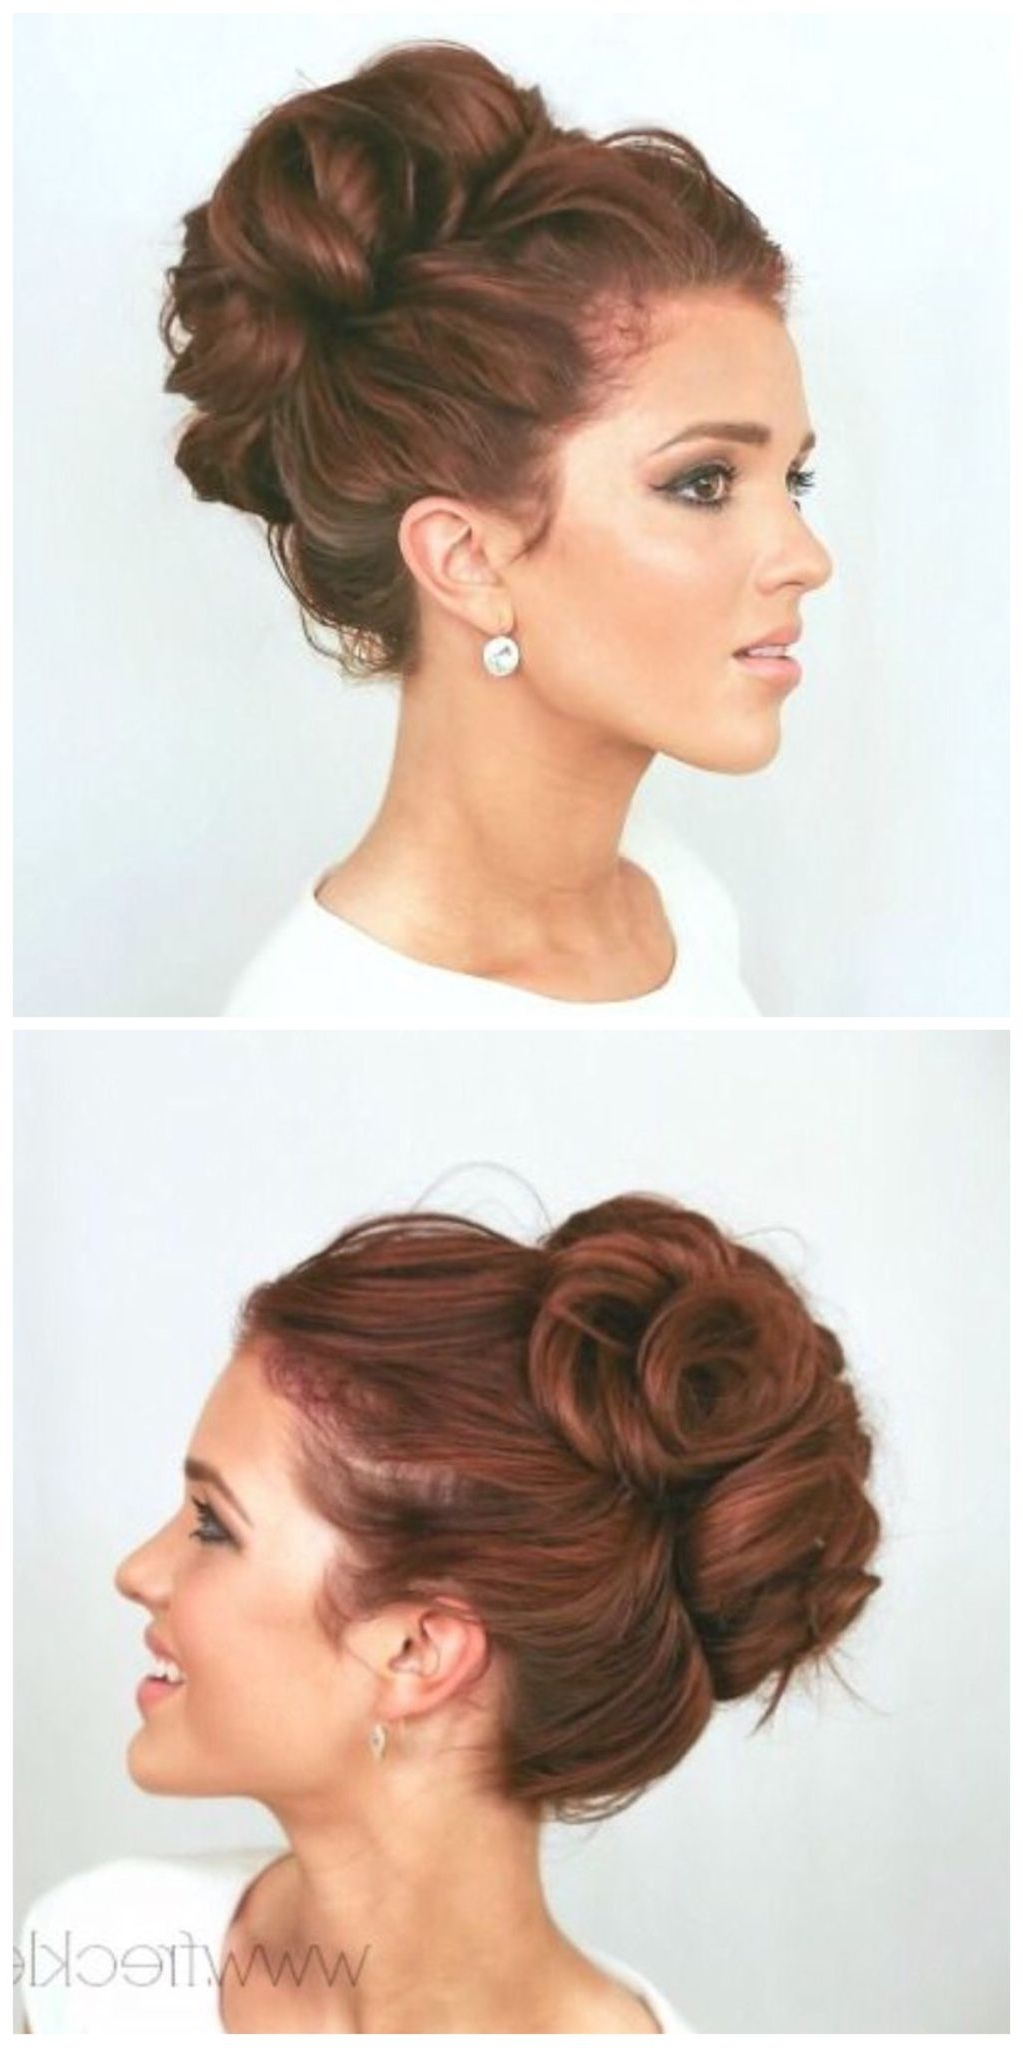 Wedding Hairstyles | Elegant Bun, Elegant And Hair Style In Updo Buns Hairstyles (View 15 of 15)